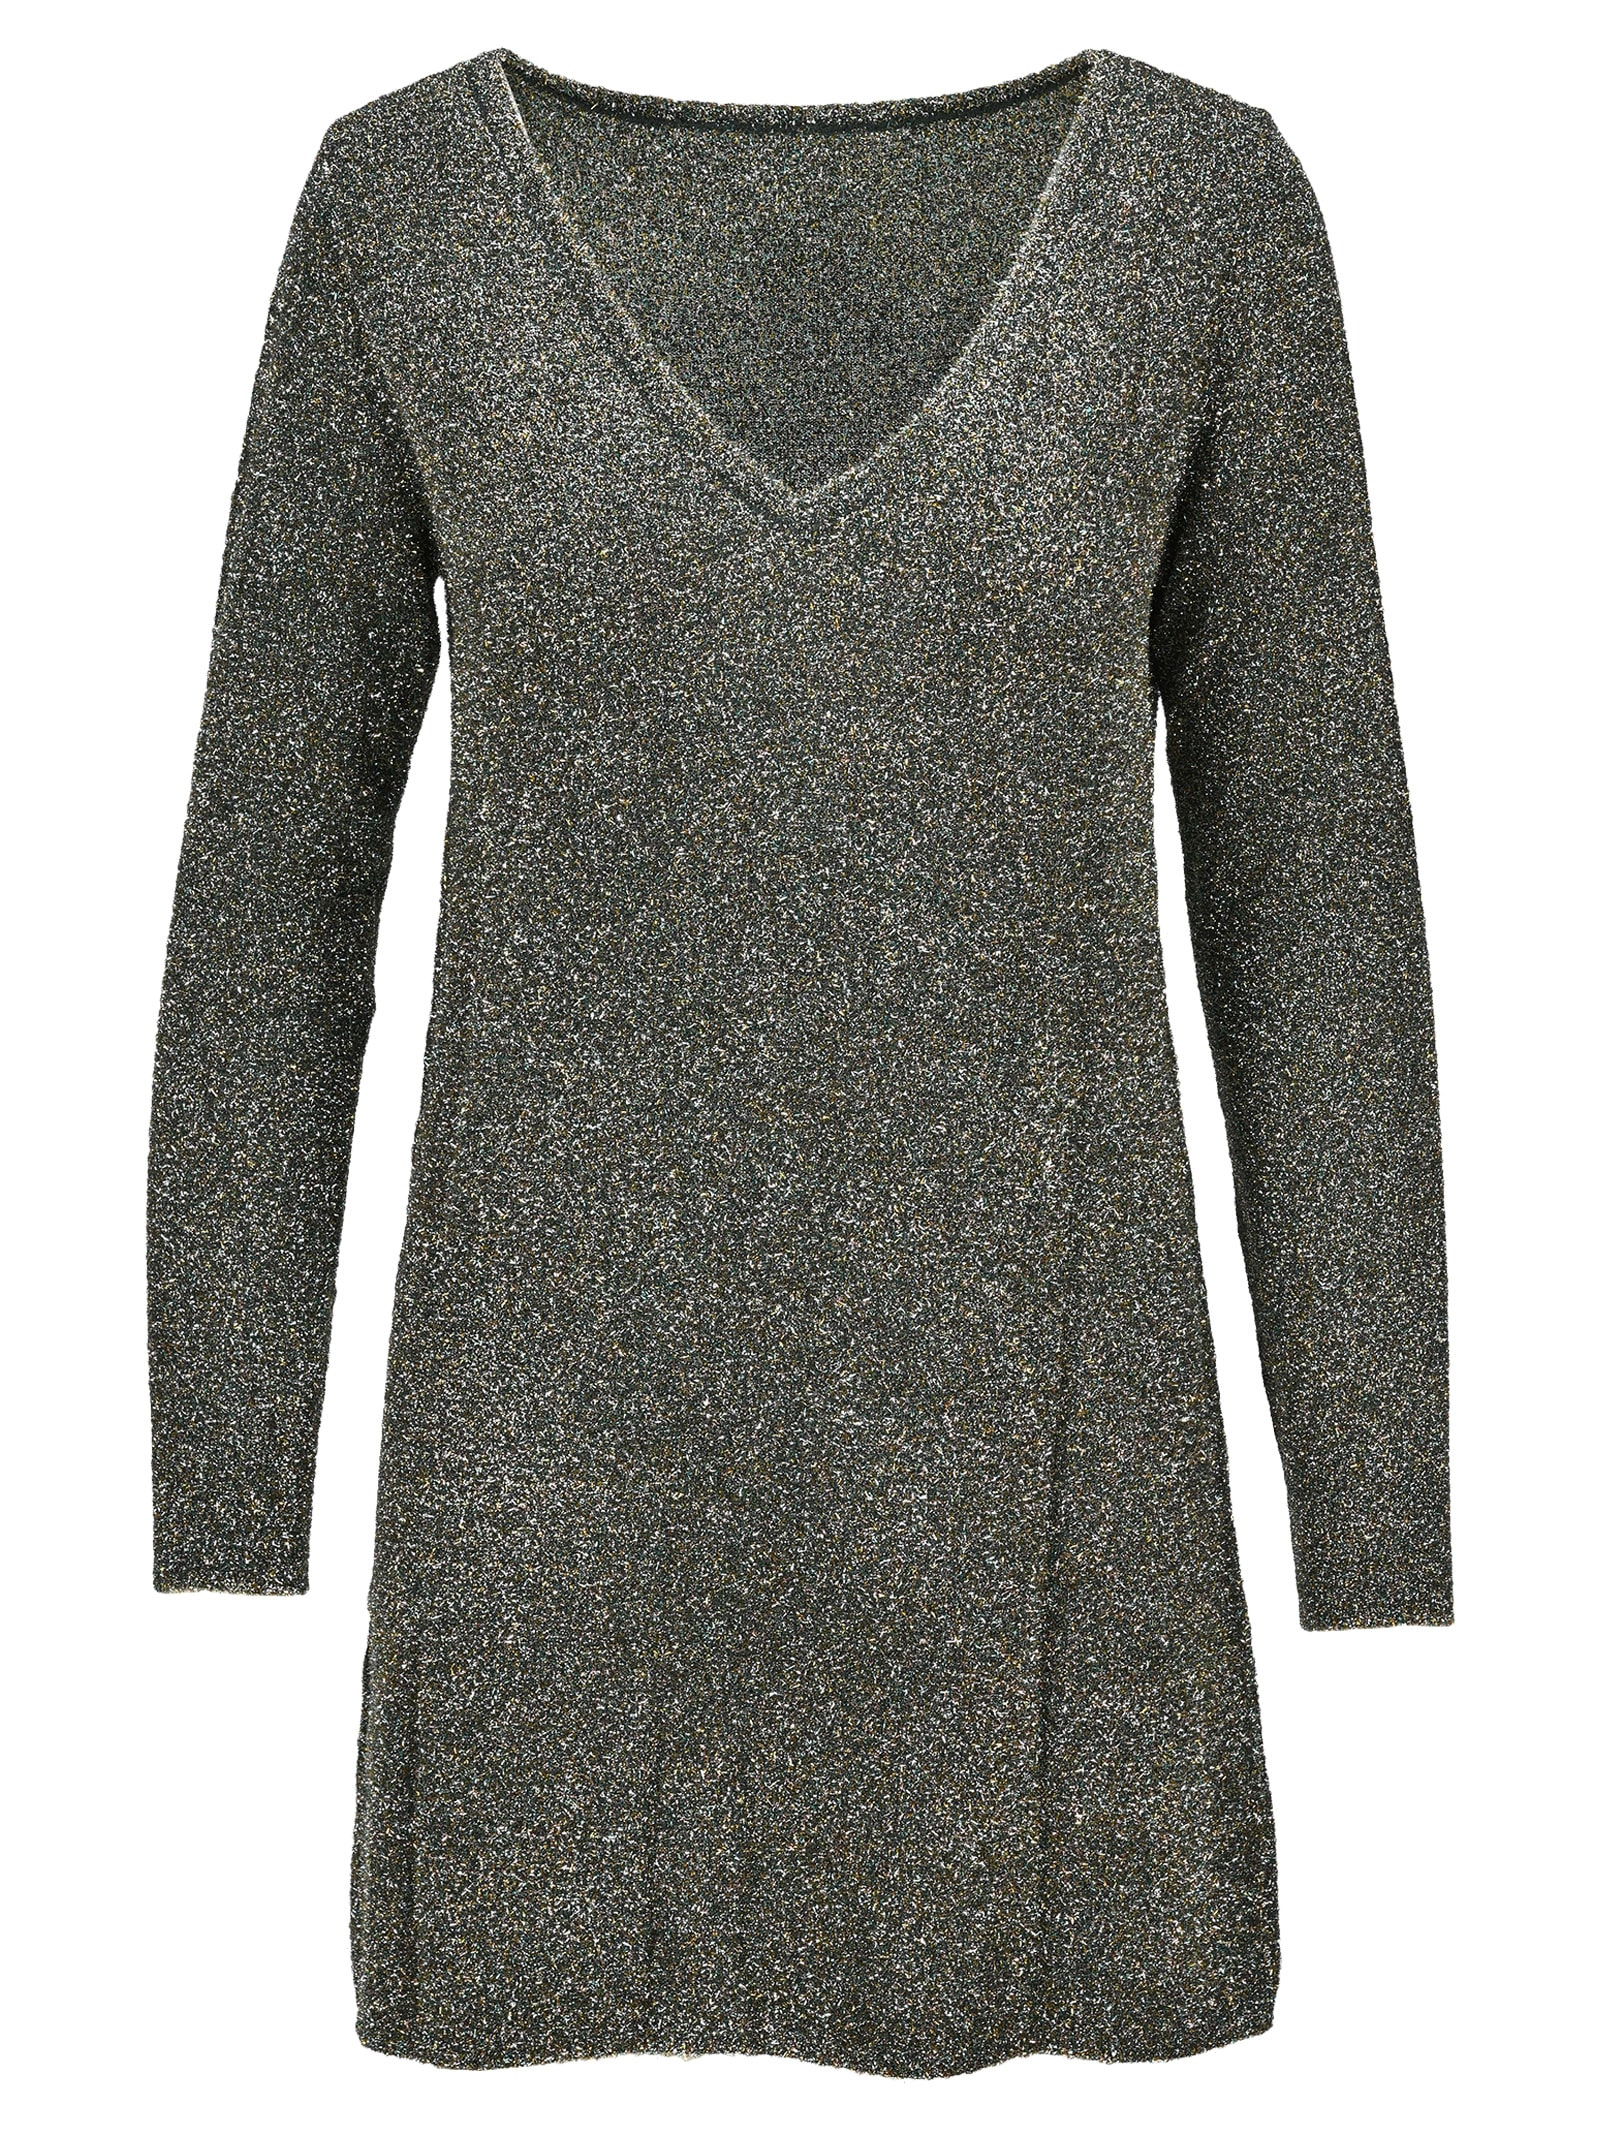 Buy A.p.c. Barbara Dress online, shop A.P.C. with free shipping